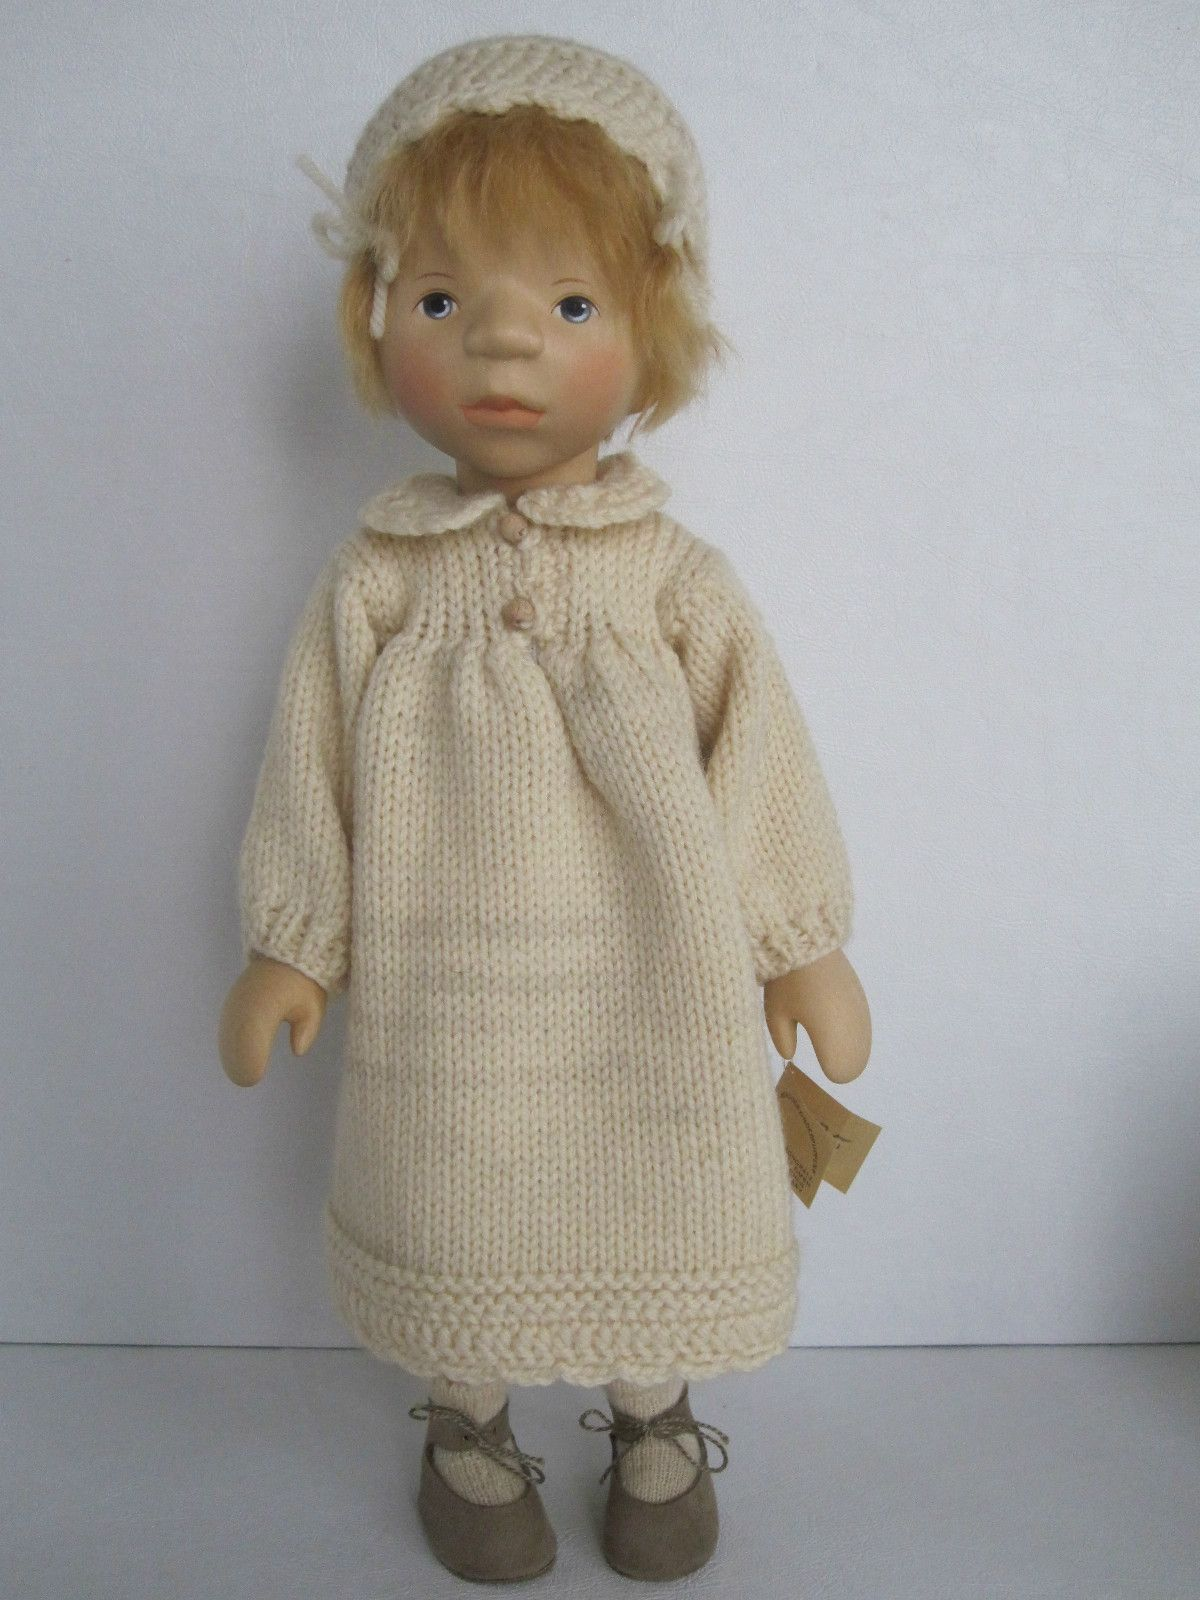 Elisabeth Pongratz All Wooden Little Girl in Hand-Knitted Outfit 83B2873P | eBay